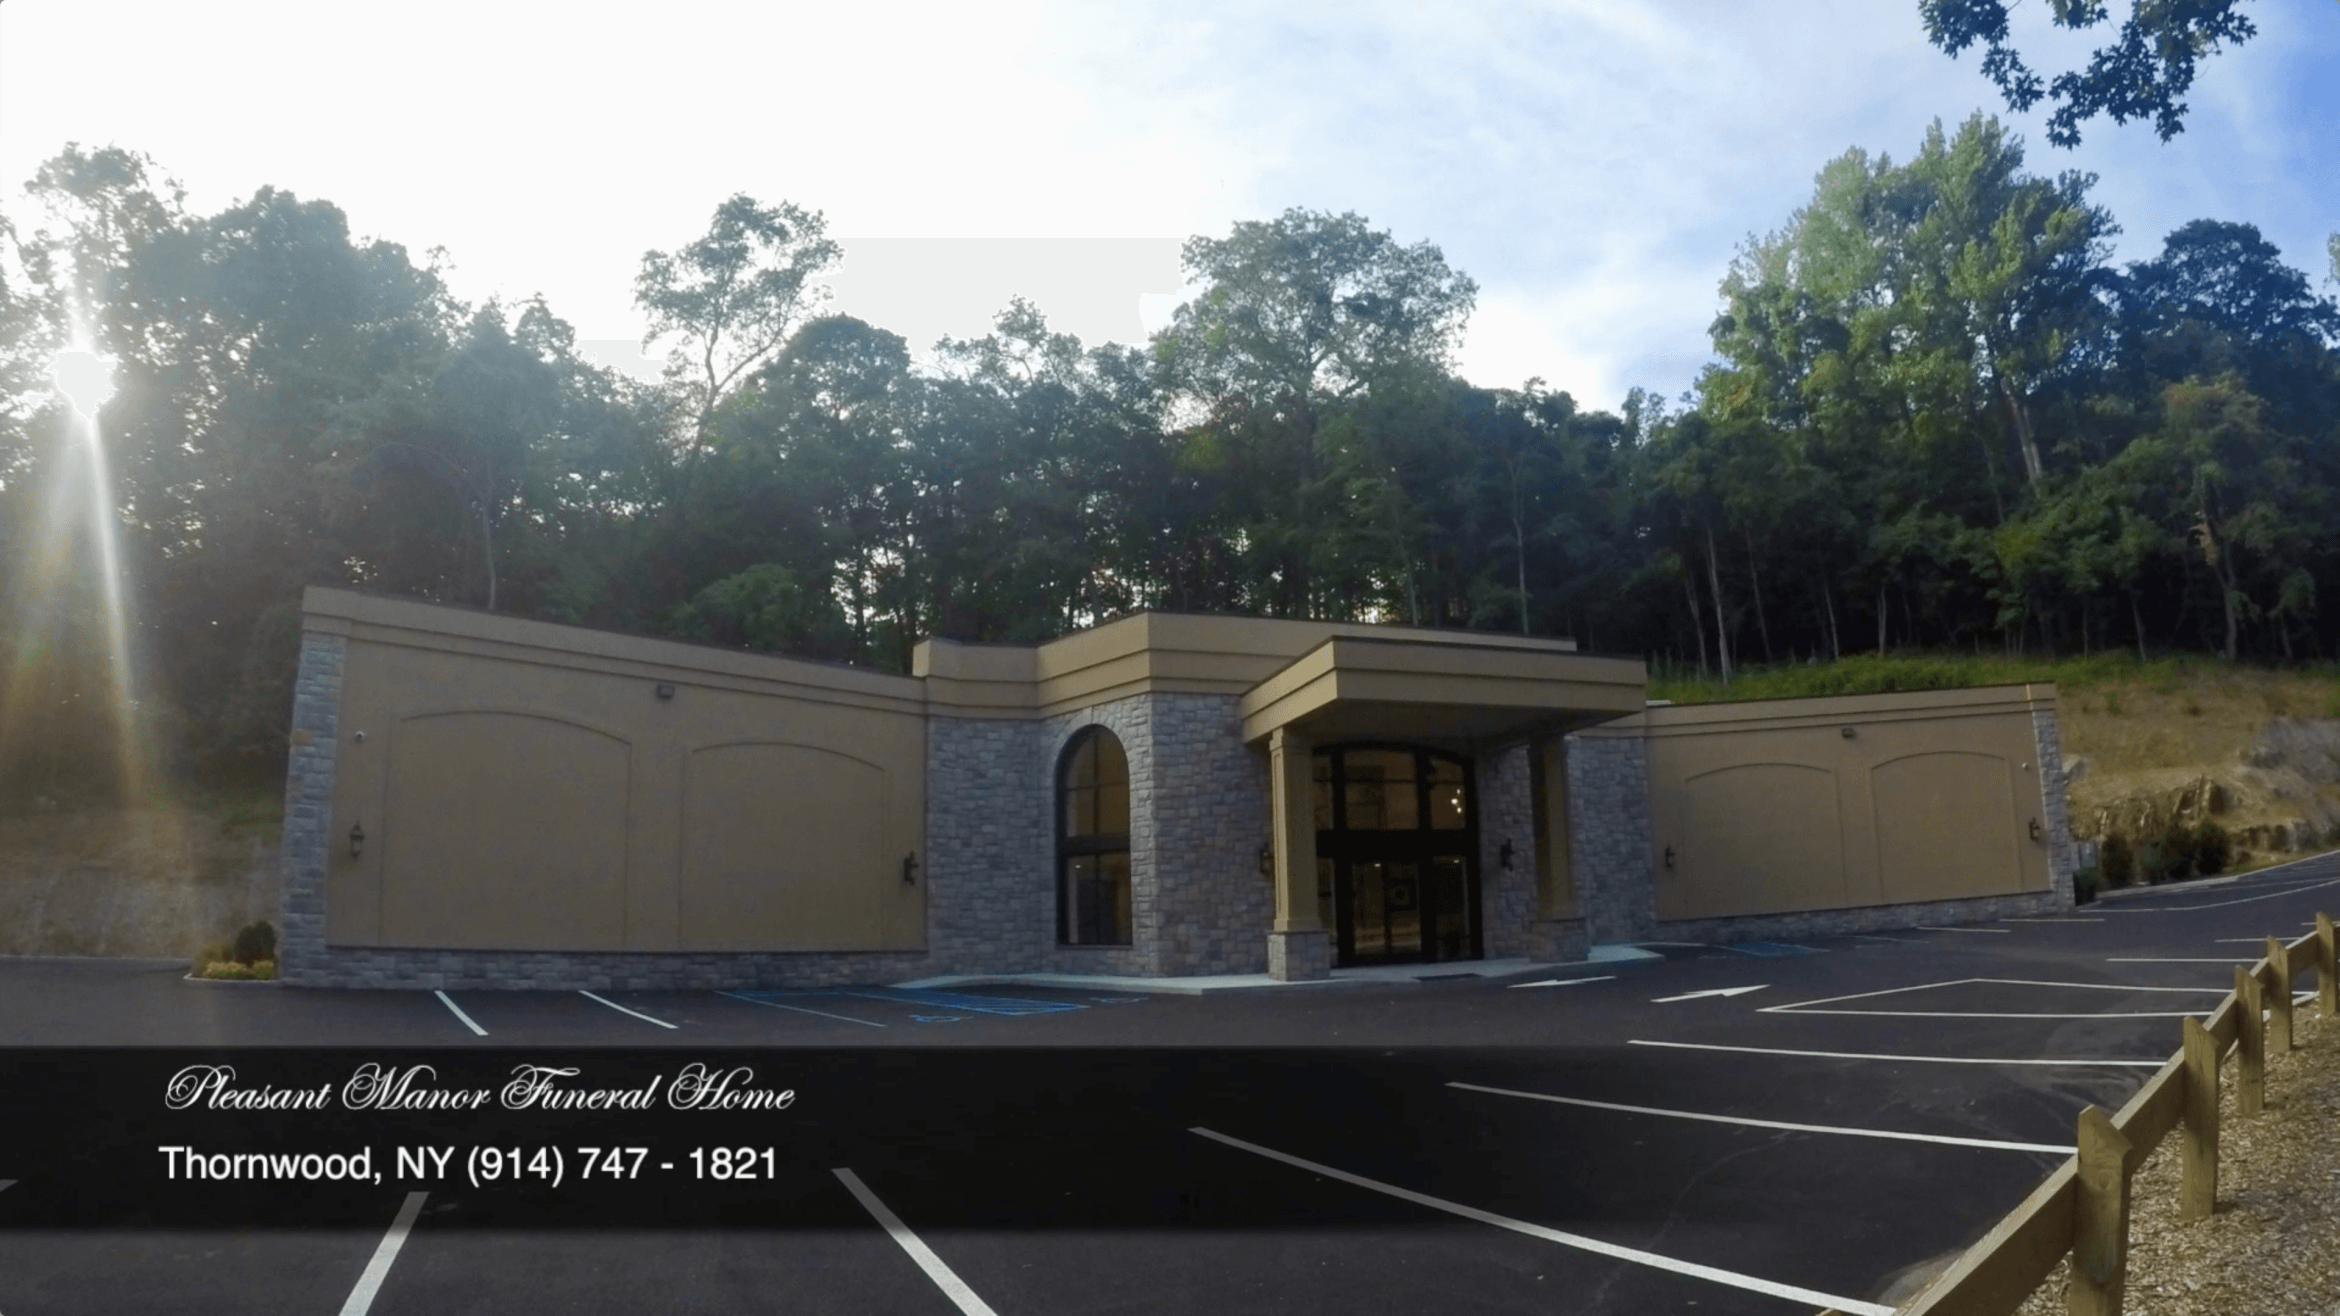 Pleasant Manor Funeral Home